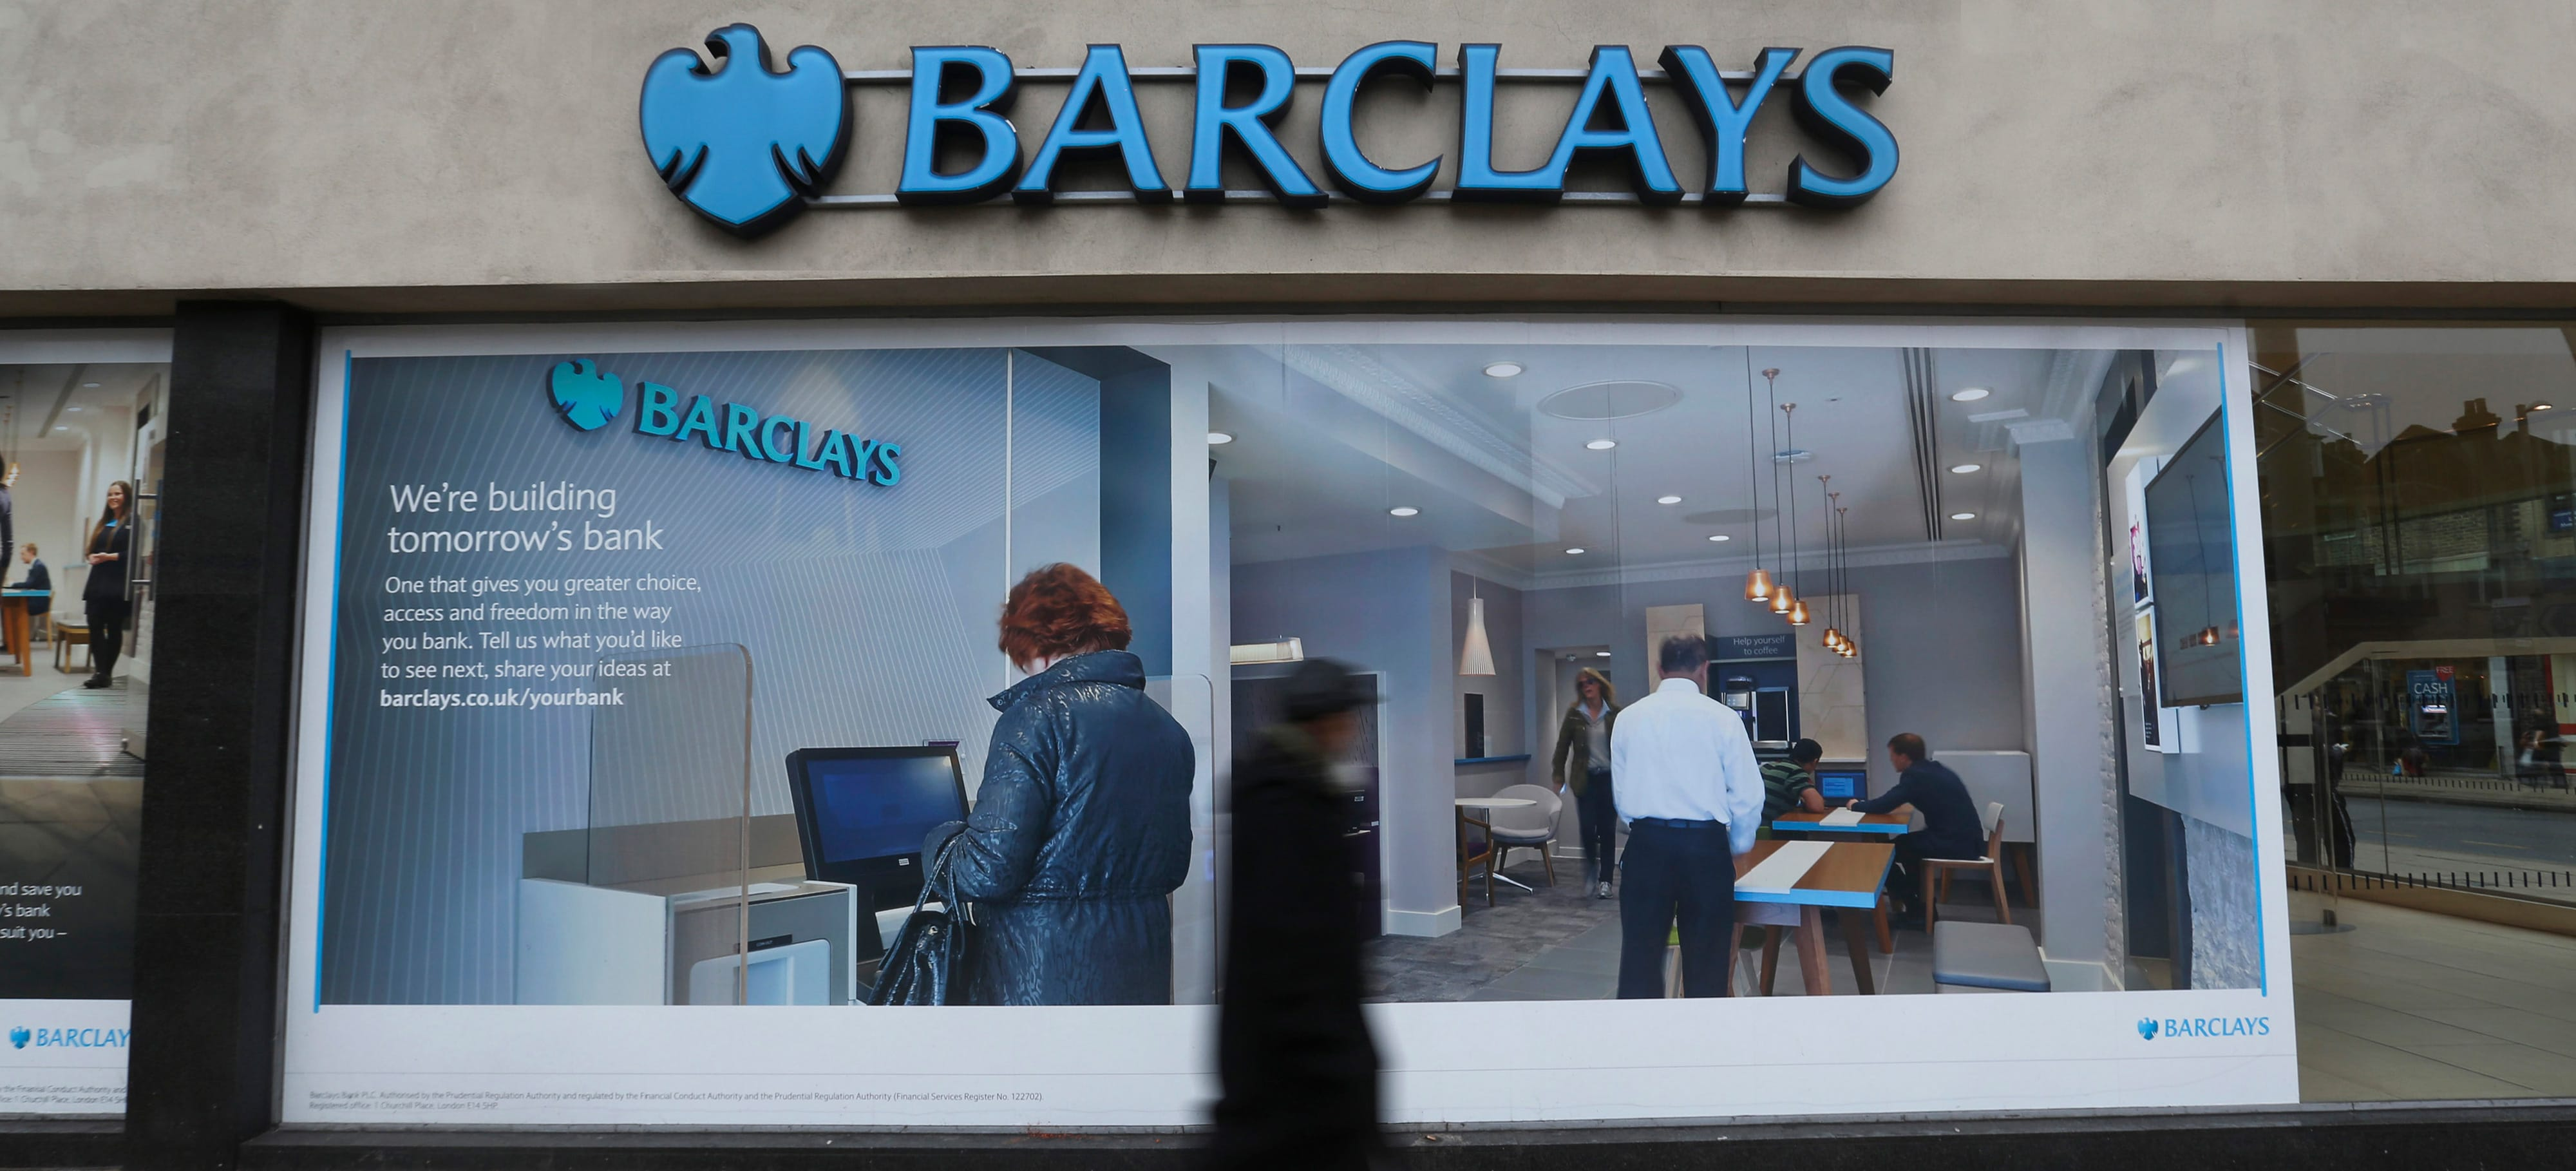 Barclays Signs Contracts with 2 Blockchain Startups from Techstars Program